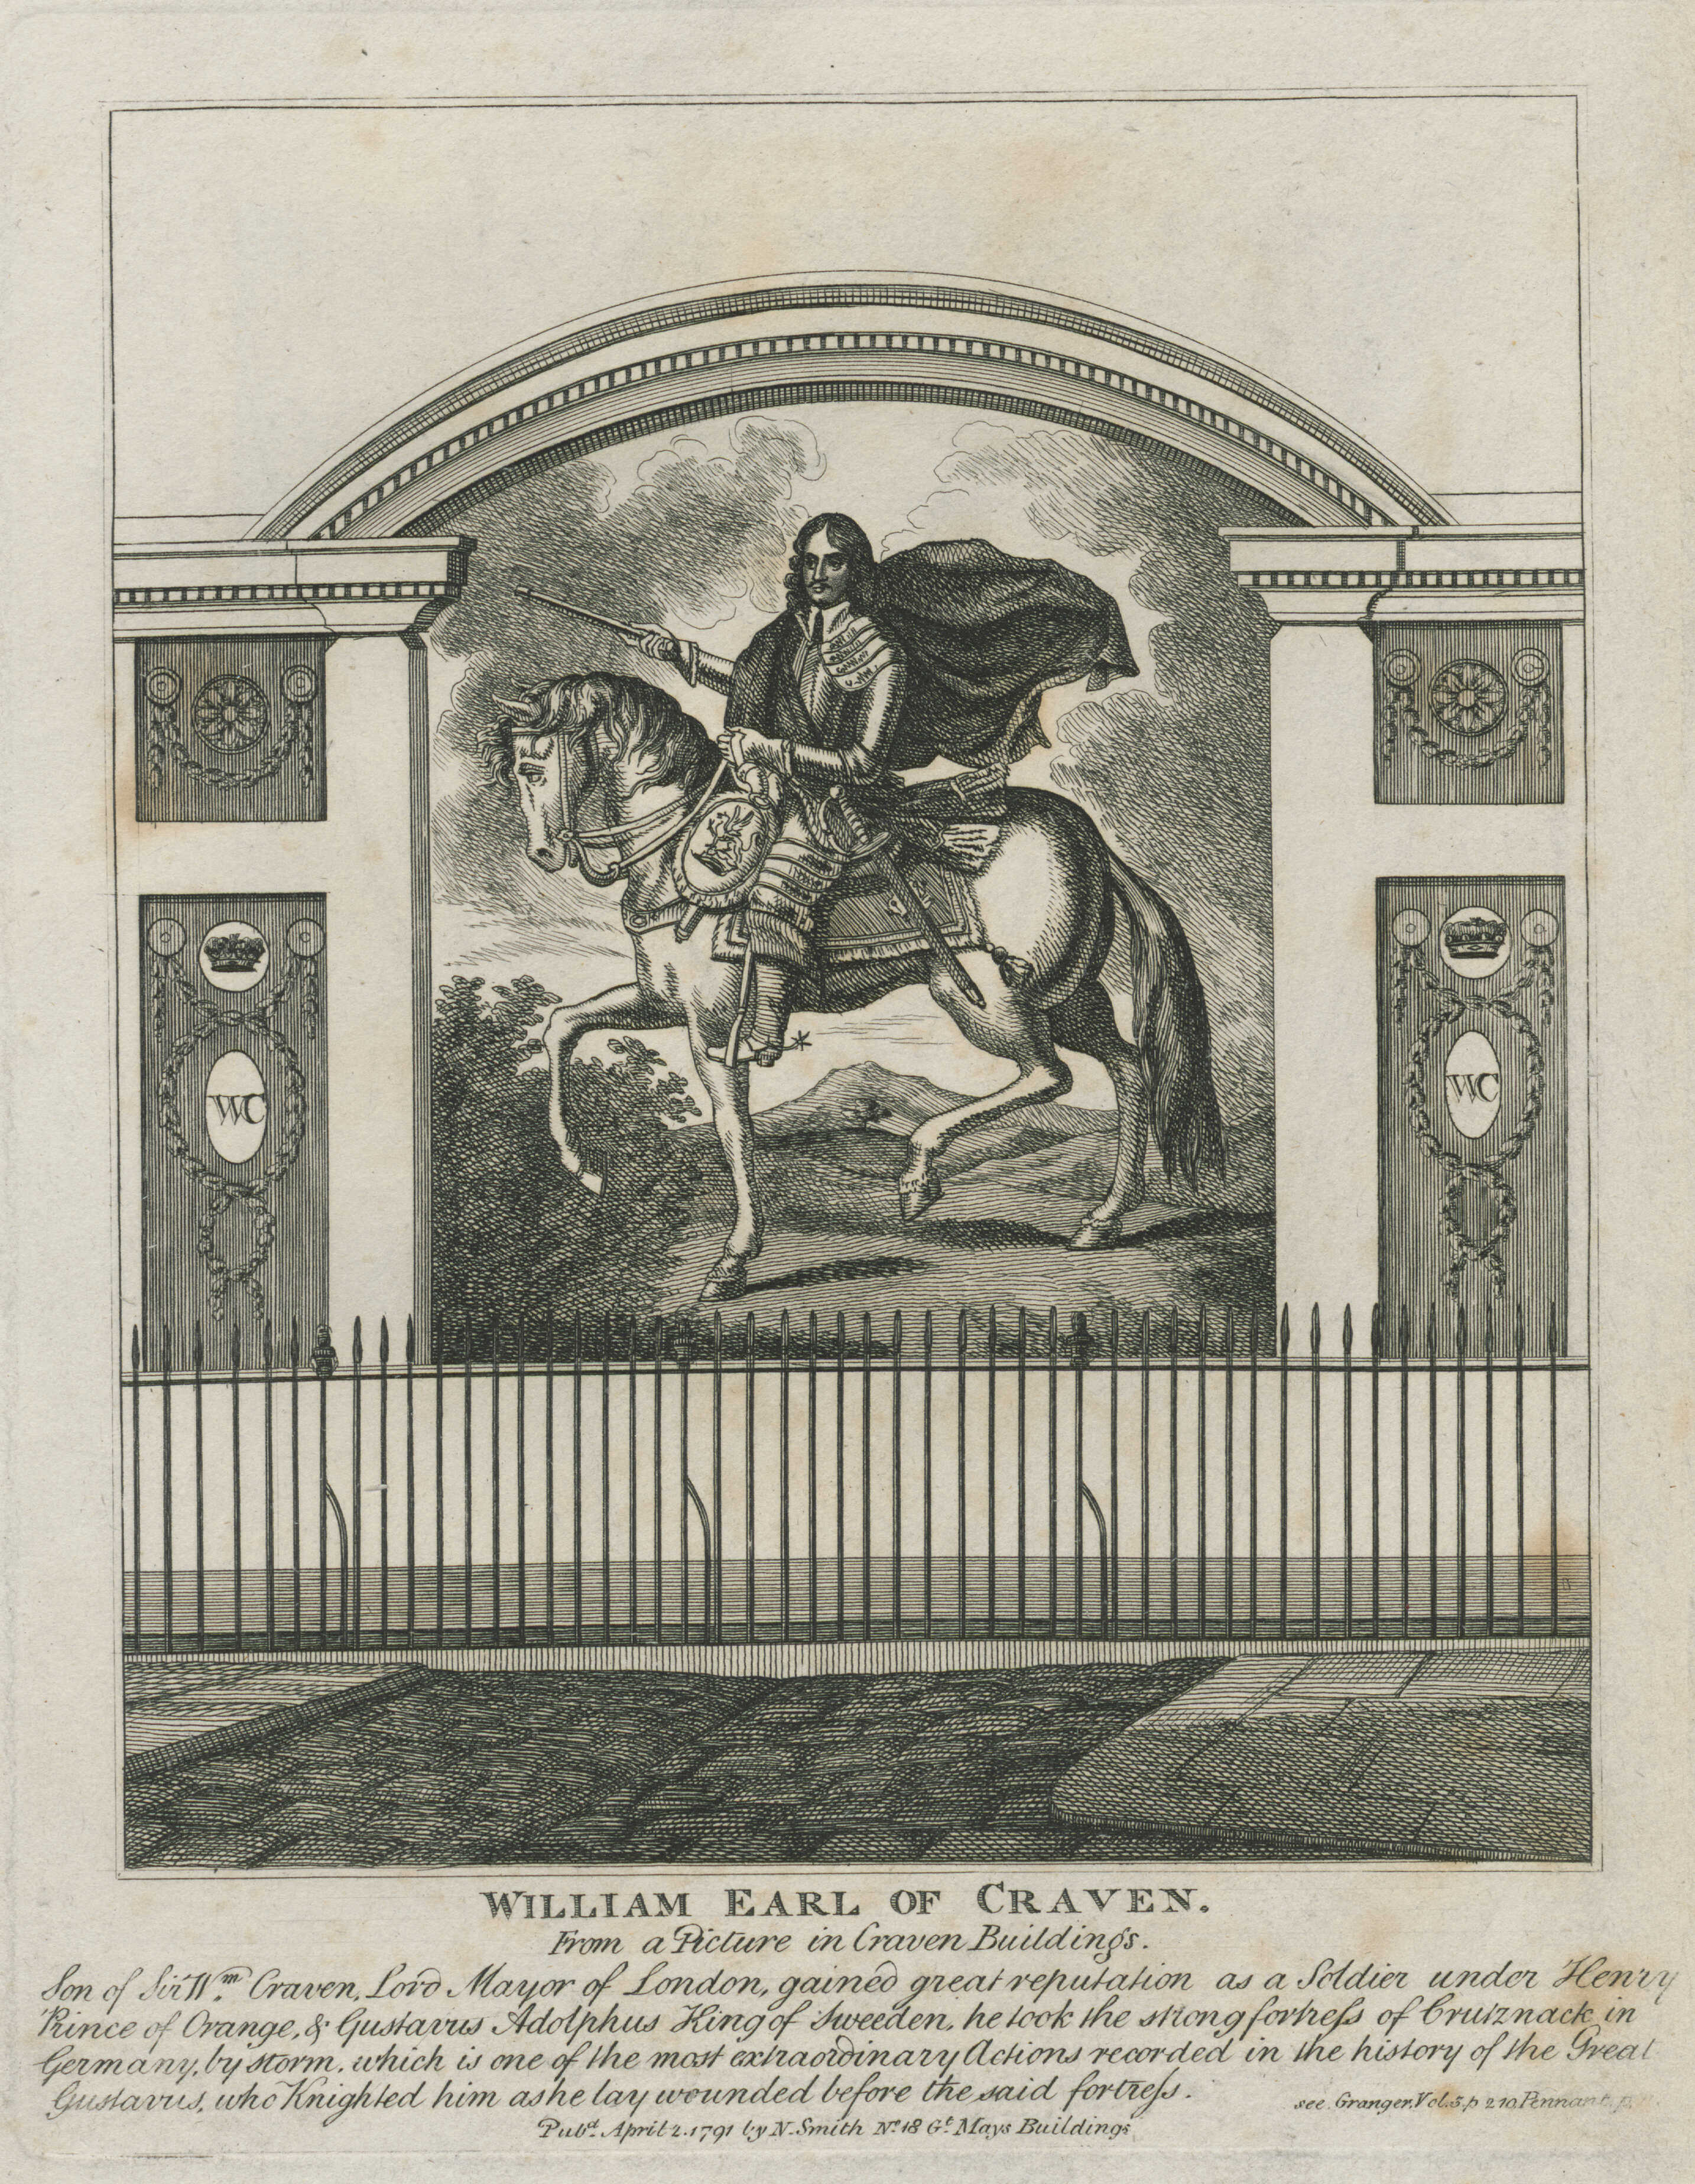 11-william-earl-of-craven-from-a-picture-in-craven-buildings